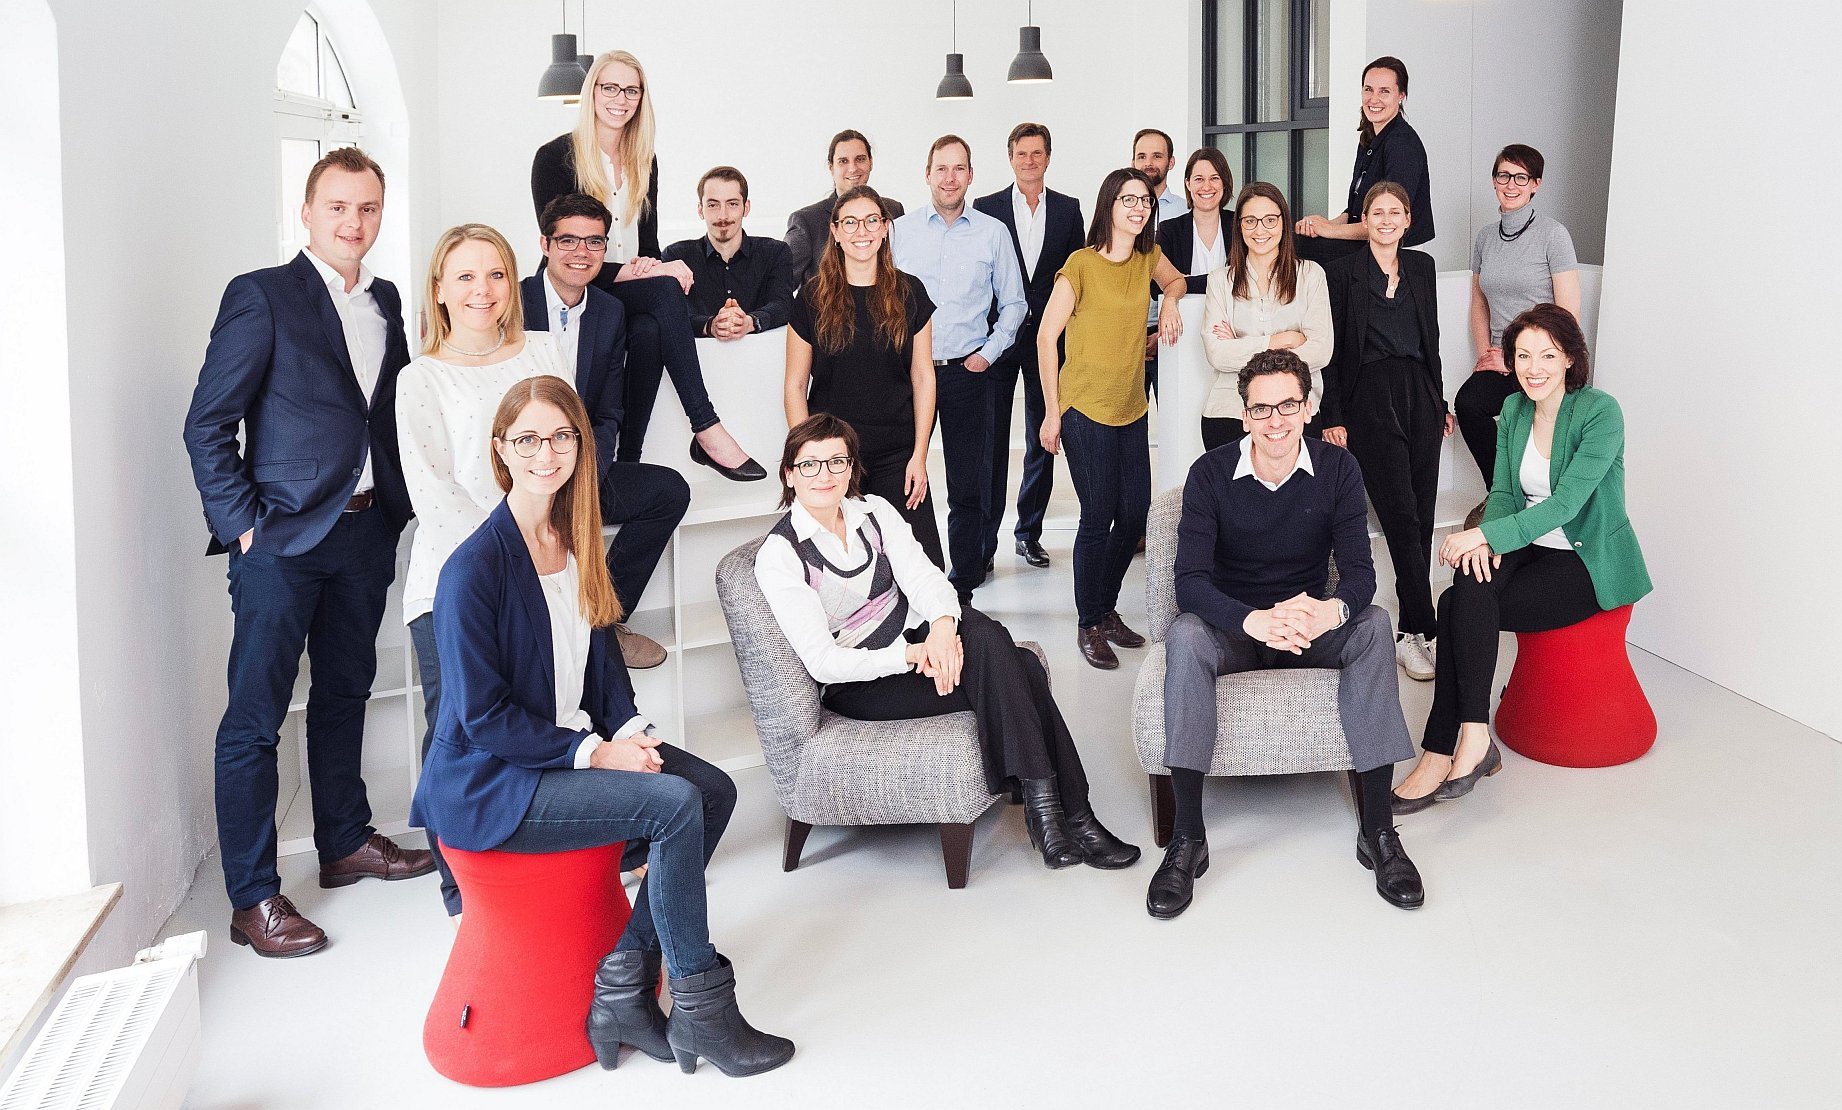 Group of young employees sitting and standing in a white room.